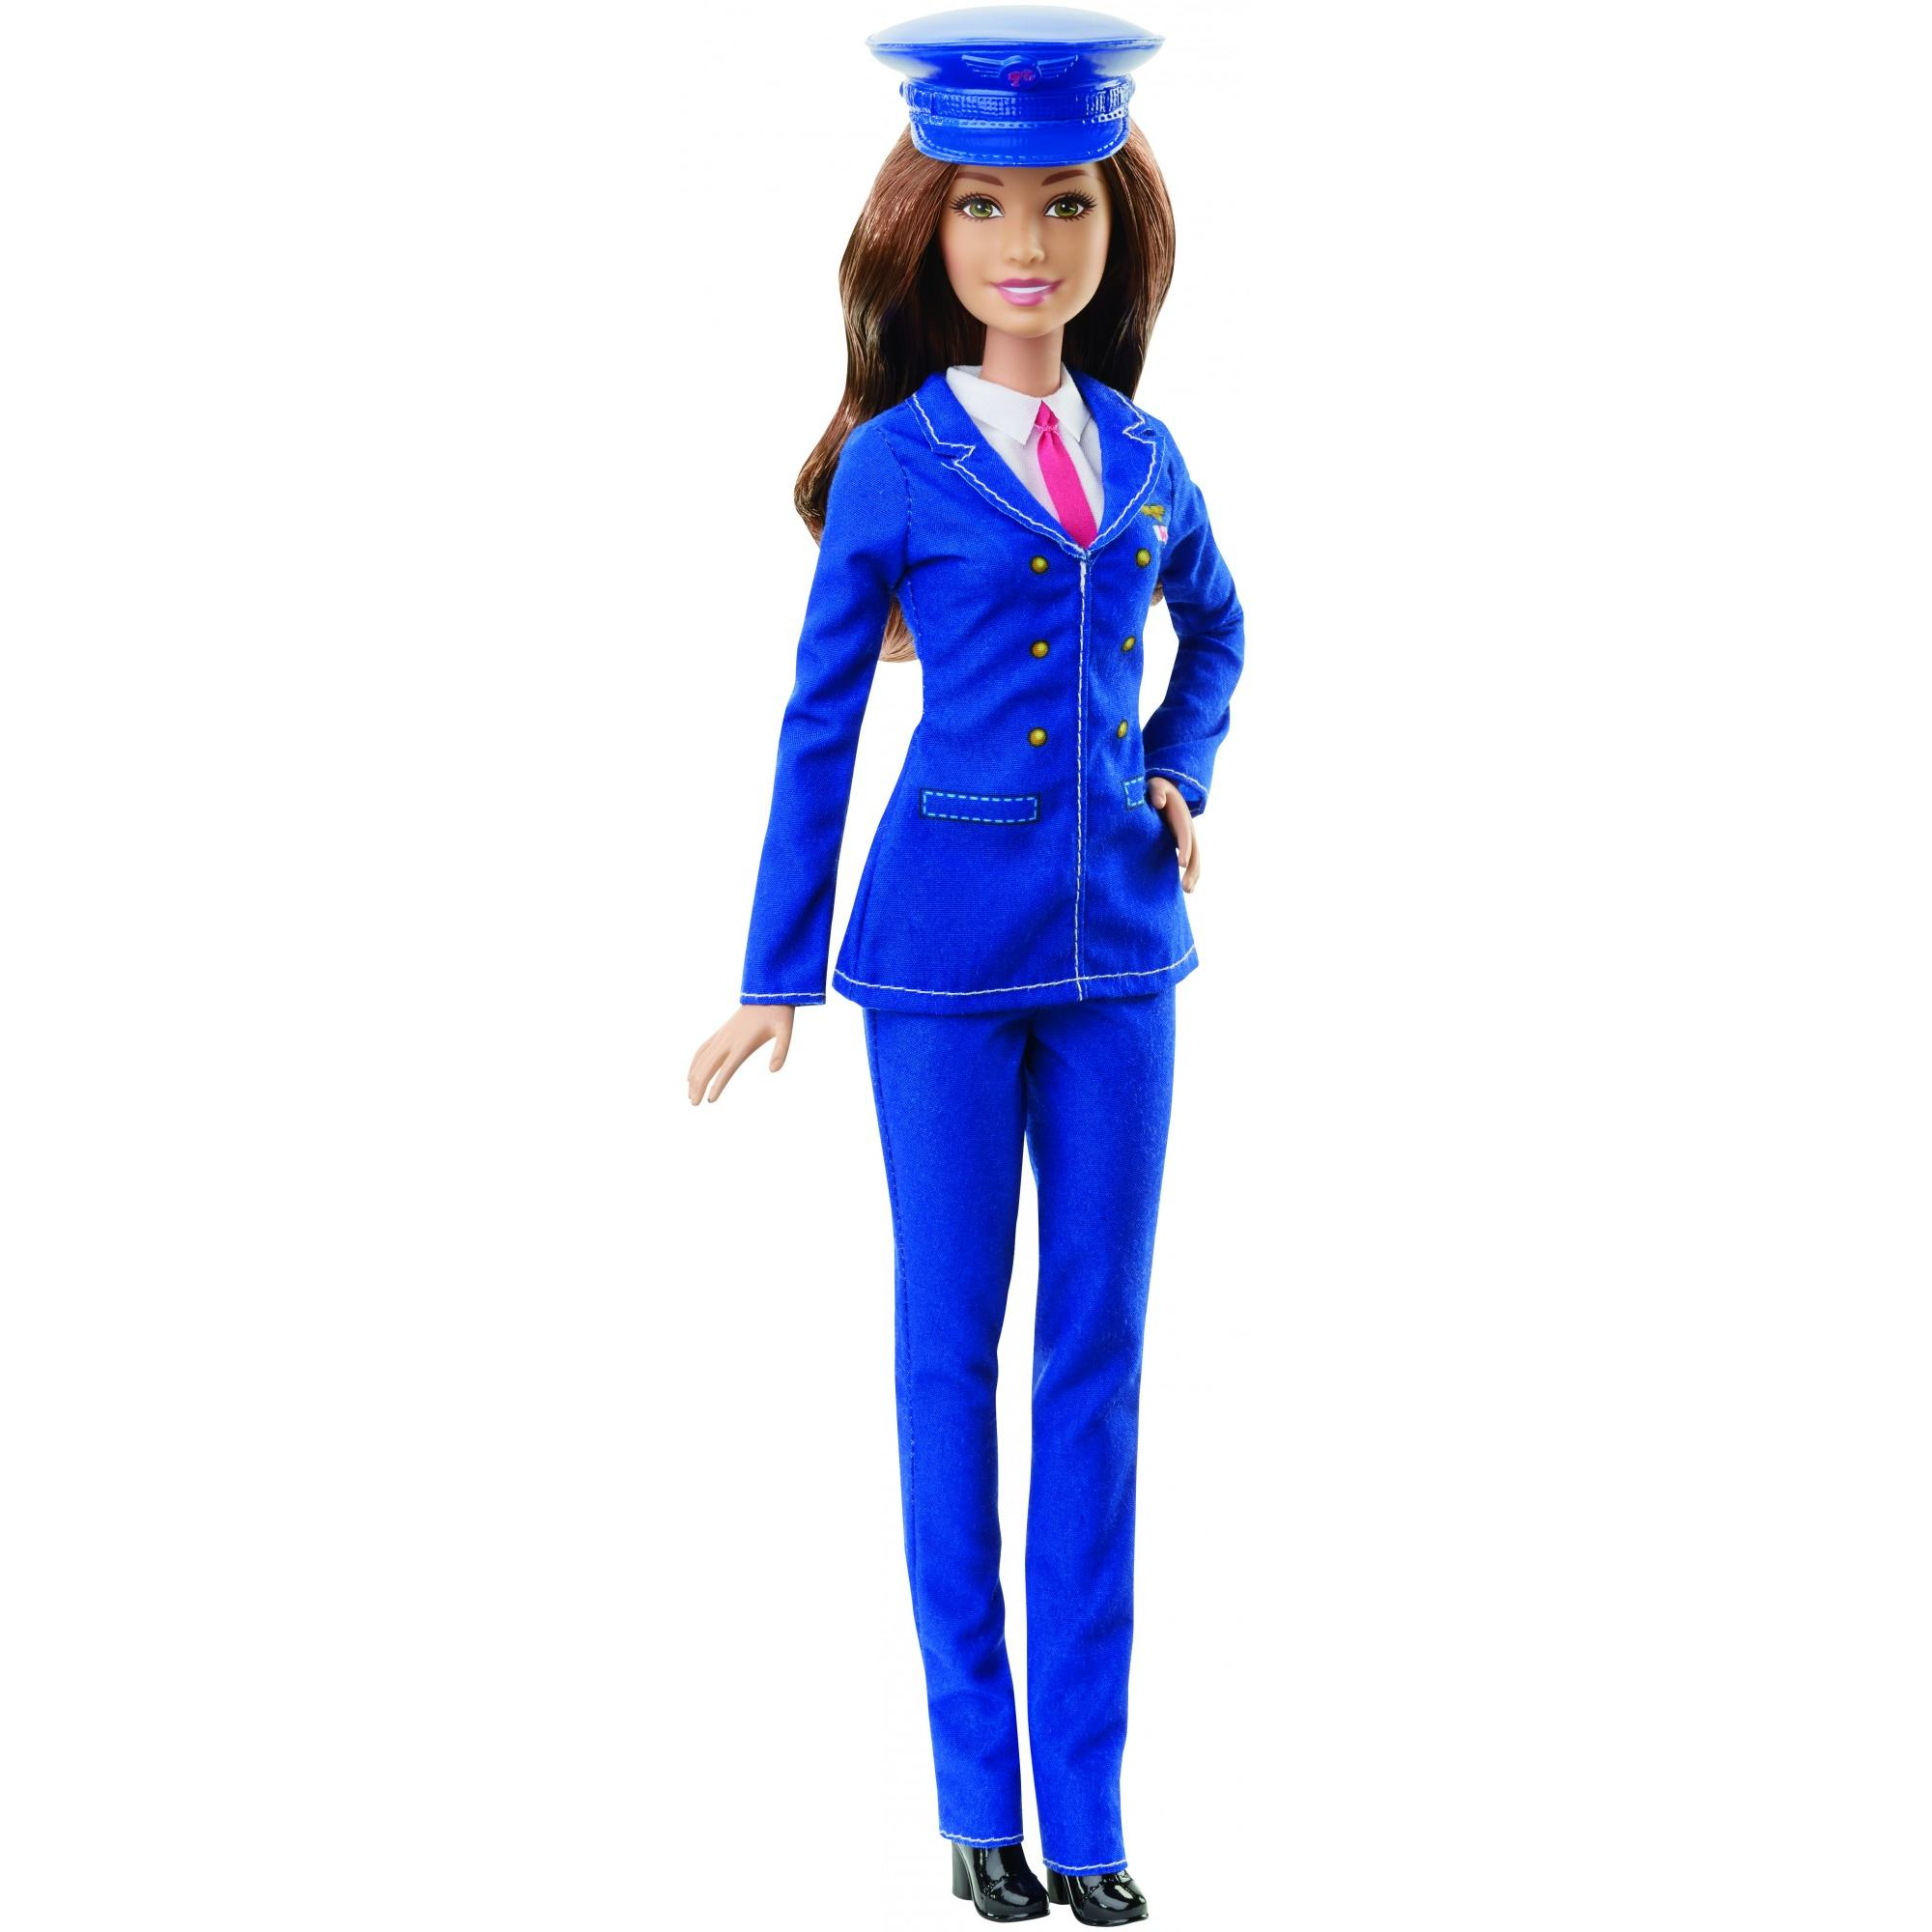 Barbie Career Blue Pilot Fashion Doll